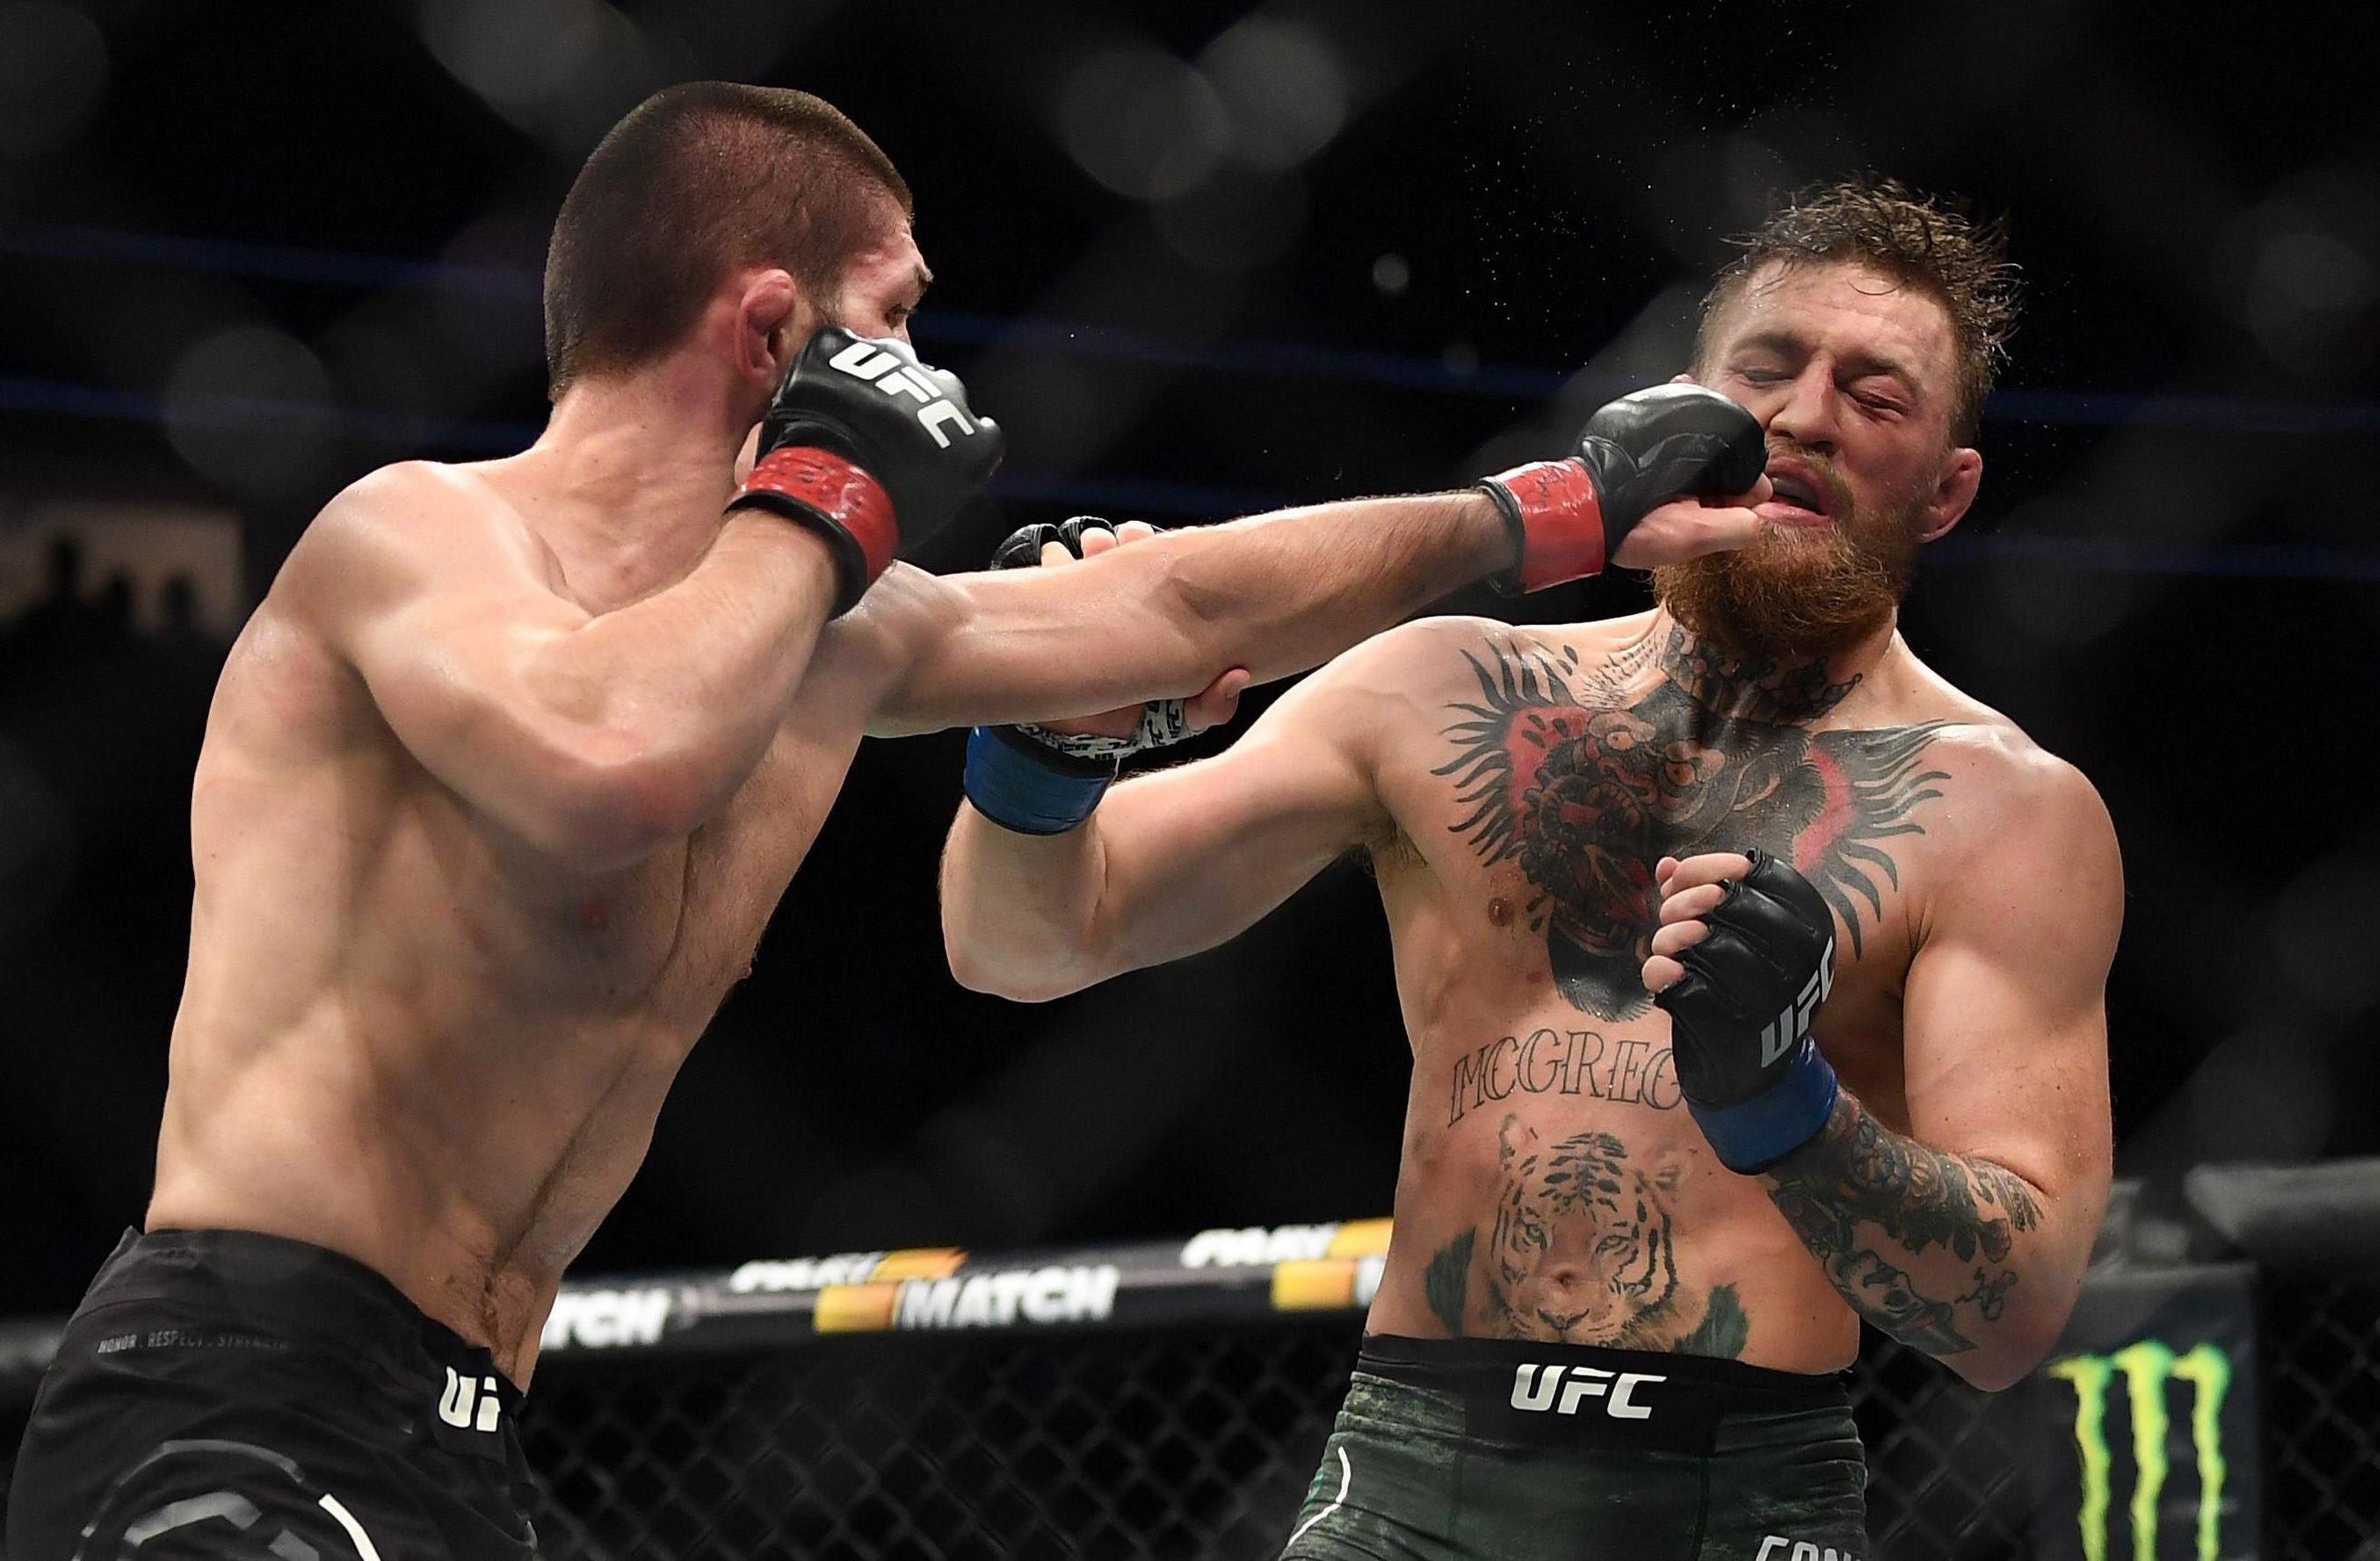 Khabib Nurmagomedov to Conor McGregor: 'We don't pay attention to idiots - Nurmagomedov